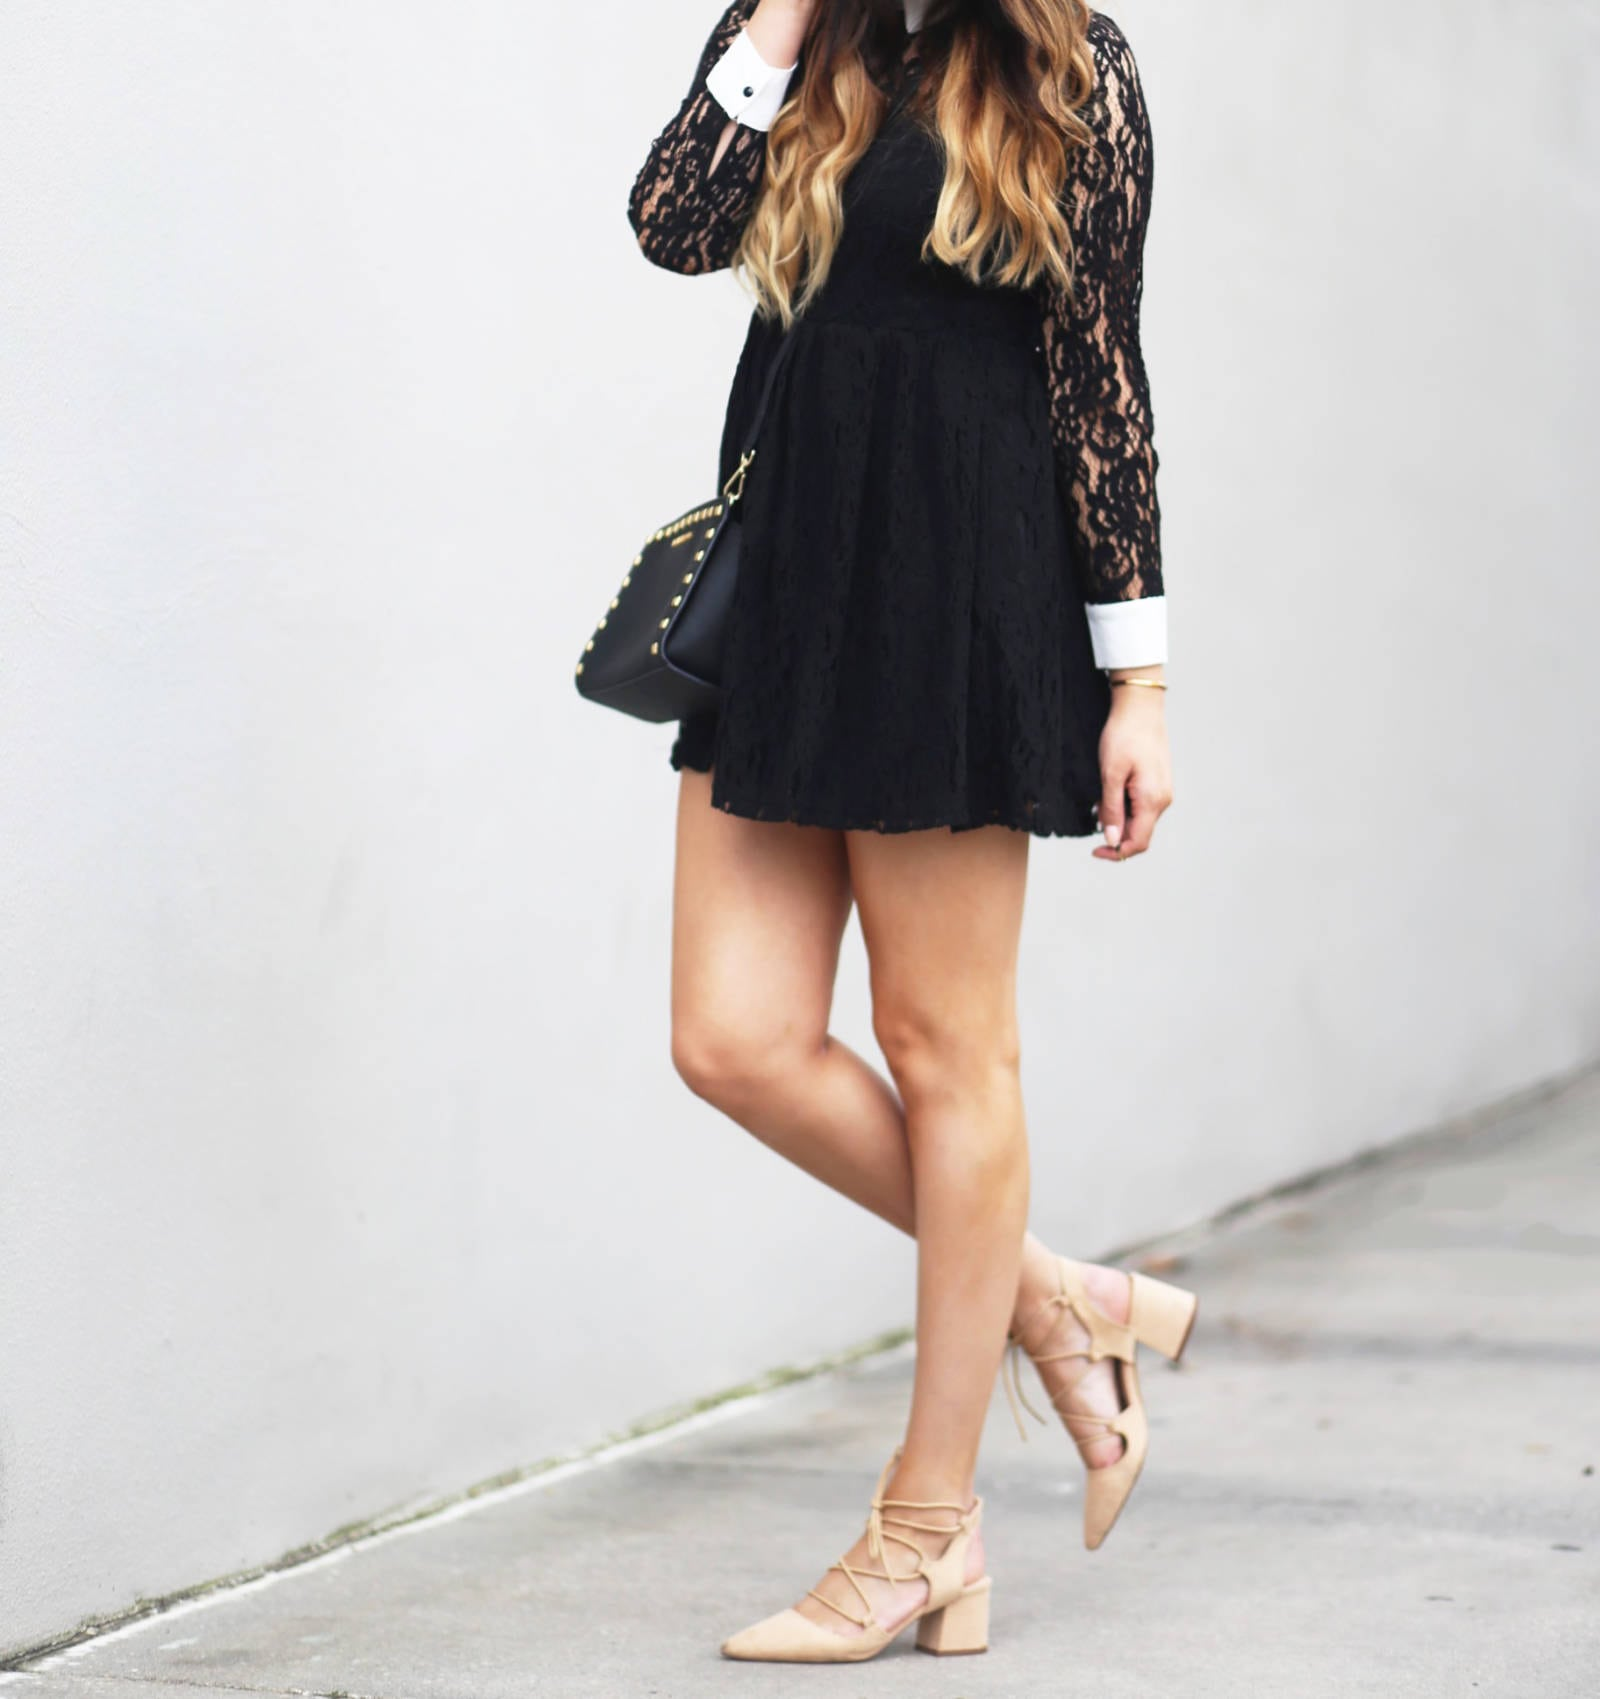 What to wear on Valentine's Day for a day date. An affordable black lace dress with white collar from Forever 21.